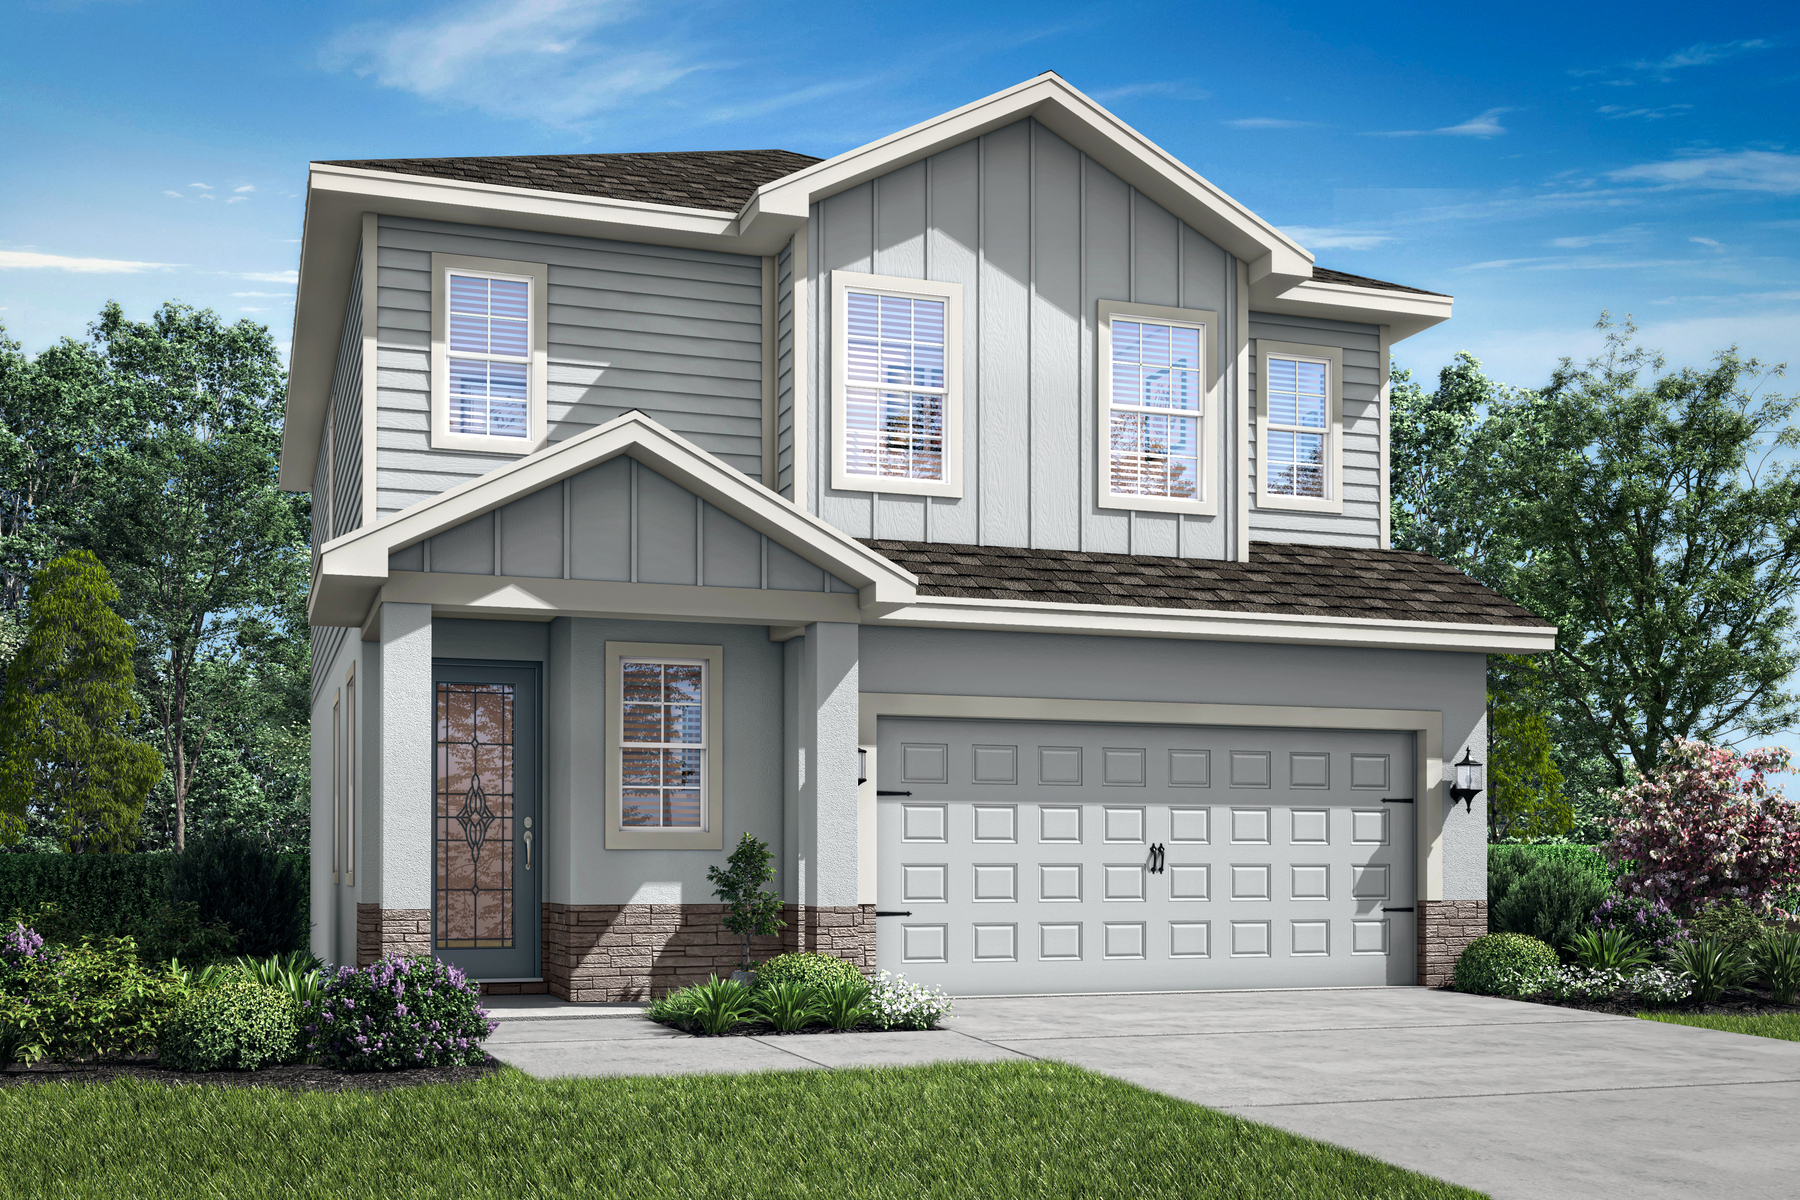 New Orlando Homes for Sale With Luxury Upgrades Included